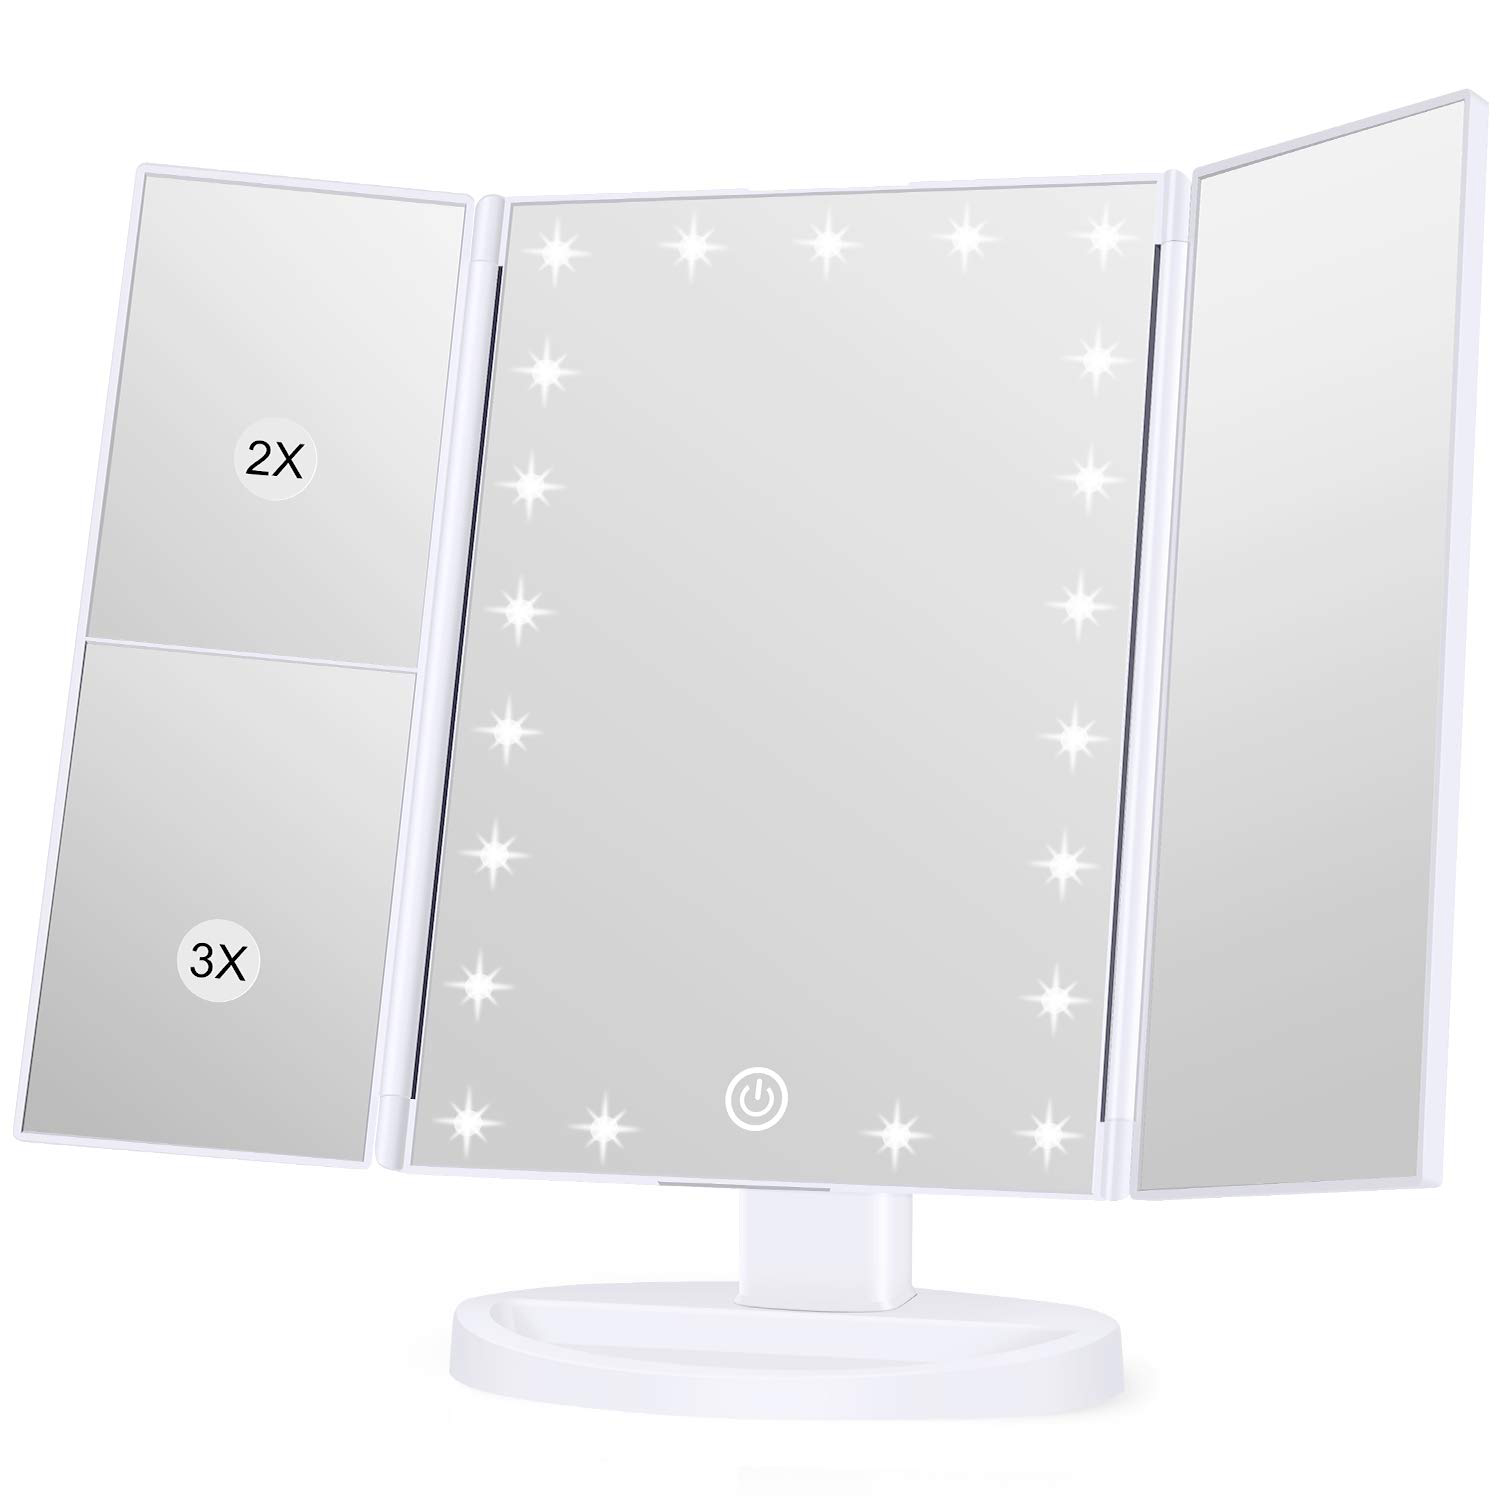 KOOLORBS Makeup 21 Led Vanity Mirror with Lights Magnification